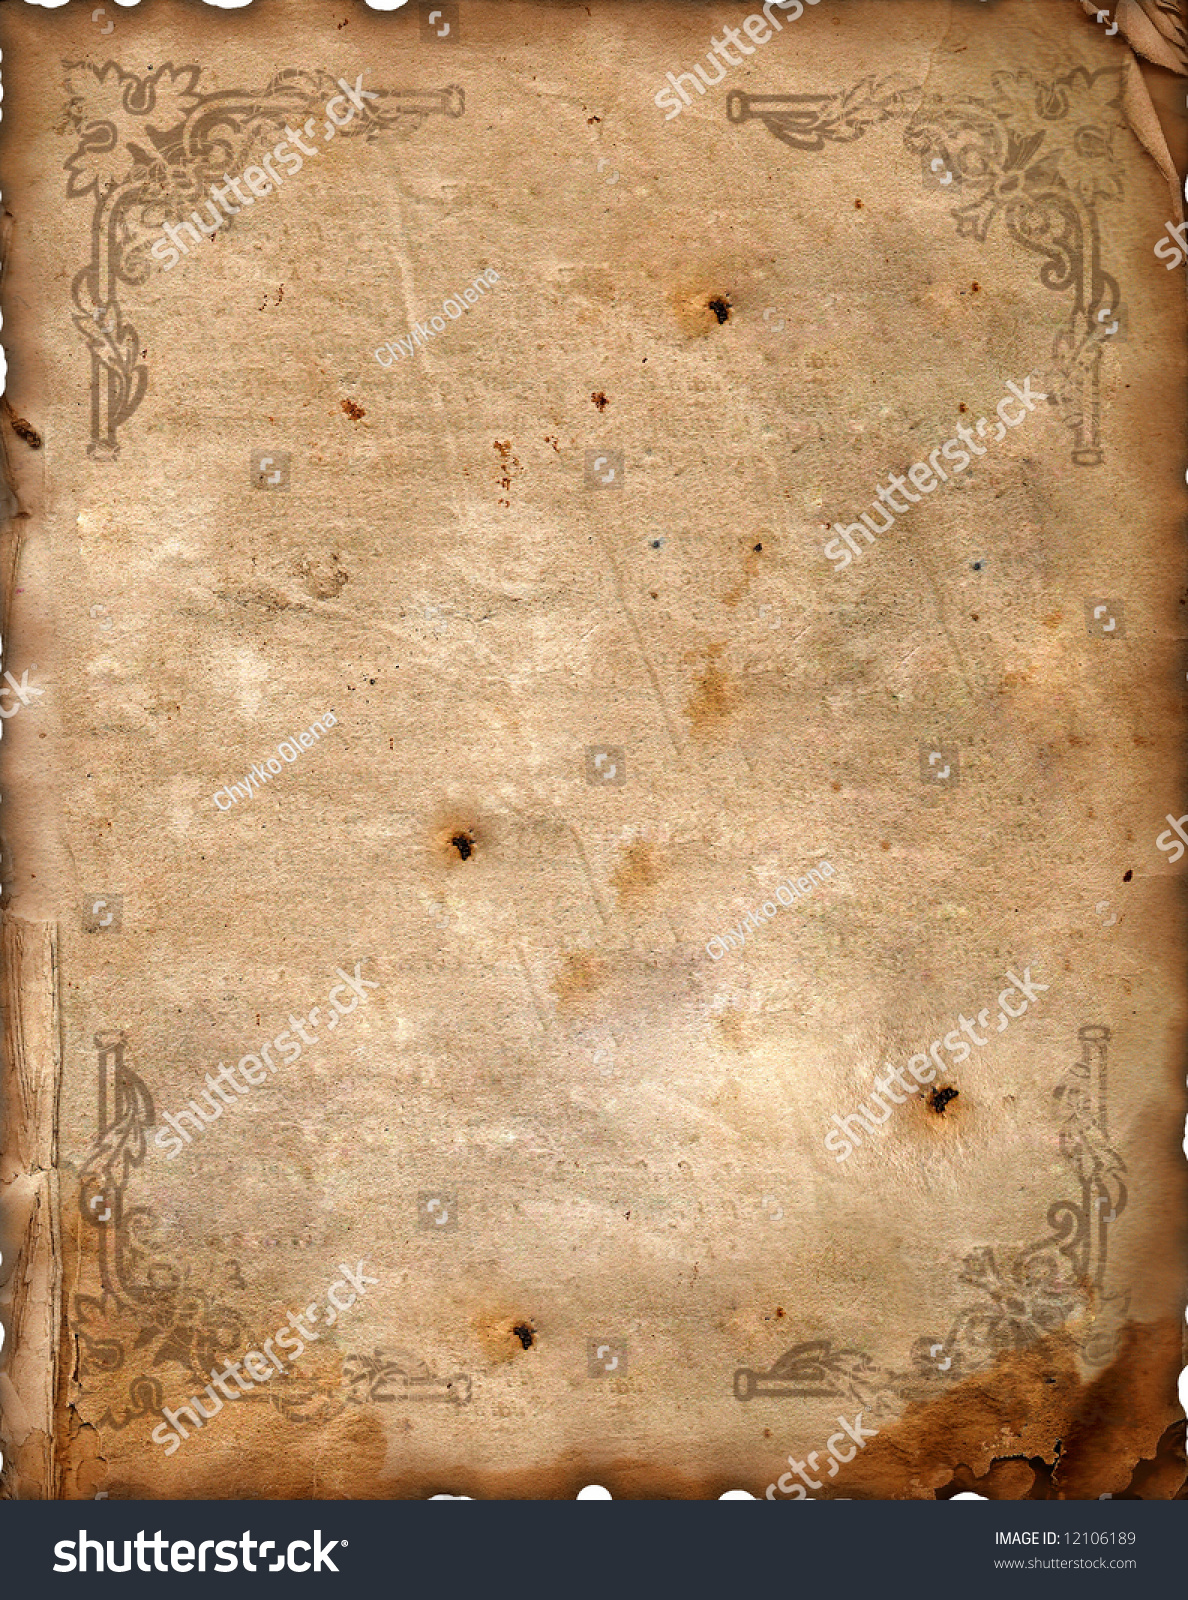 old style paper background Old letter with vintage handwriting grungy paper background retro style toned picture, stock photo stock image of 'old letter with vintage handwriting grungy paper background retro style.